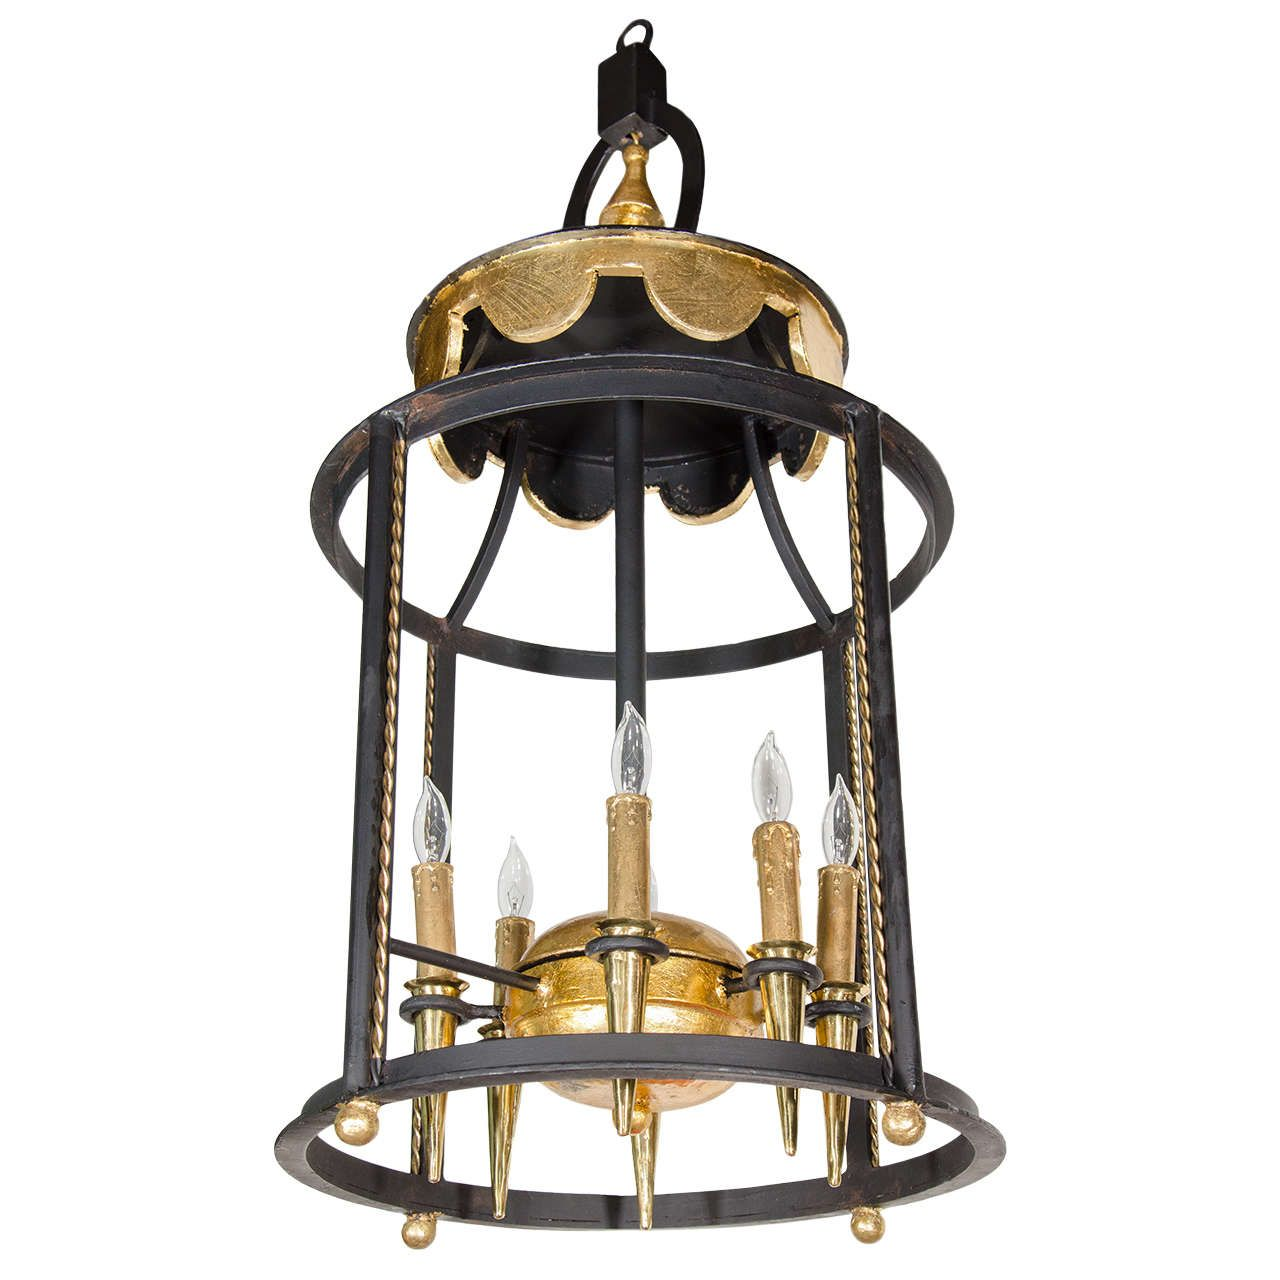 Exceptional Art Deco Large Scale Lantern Chandelier Lantern